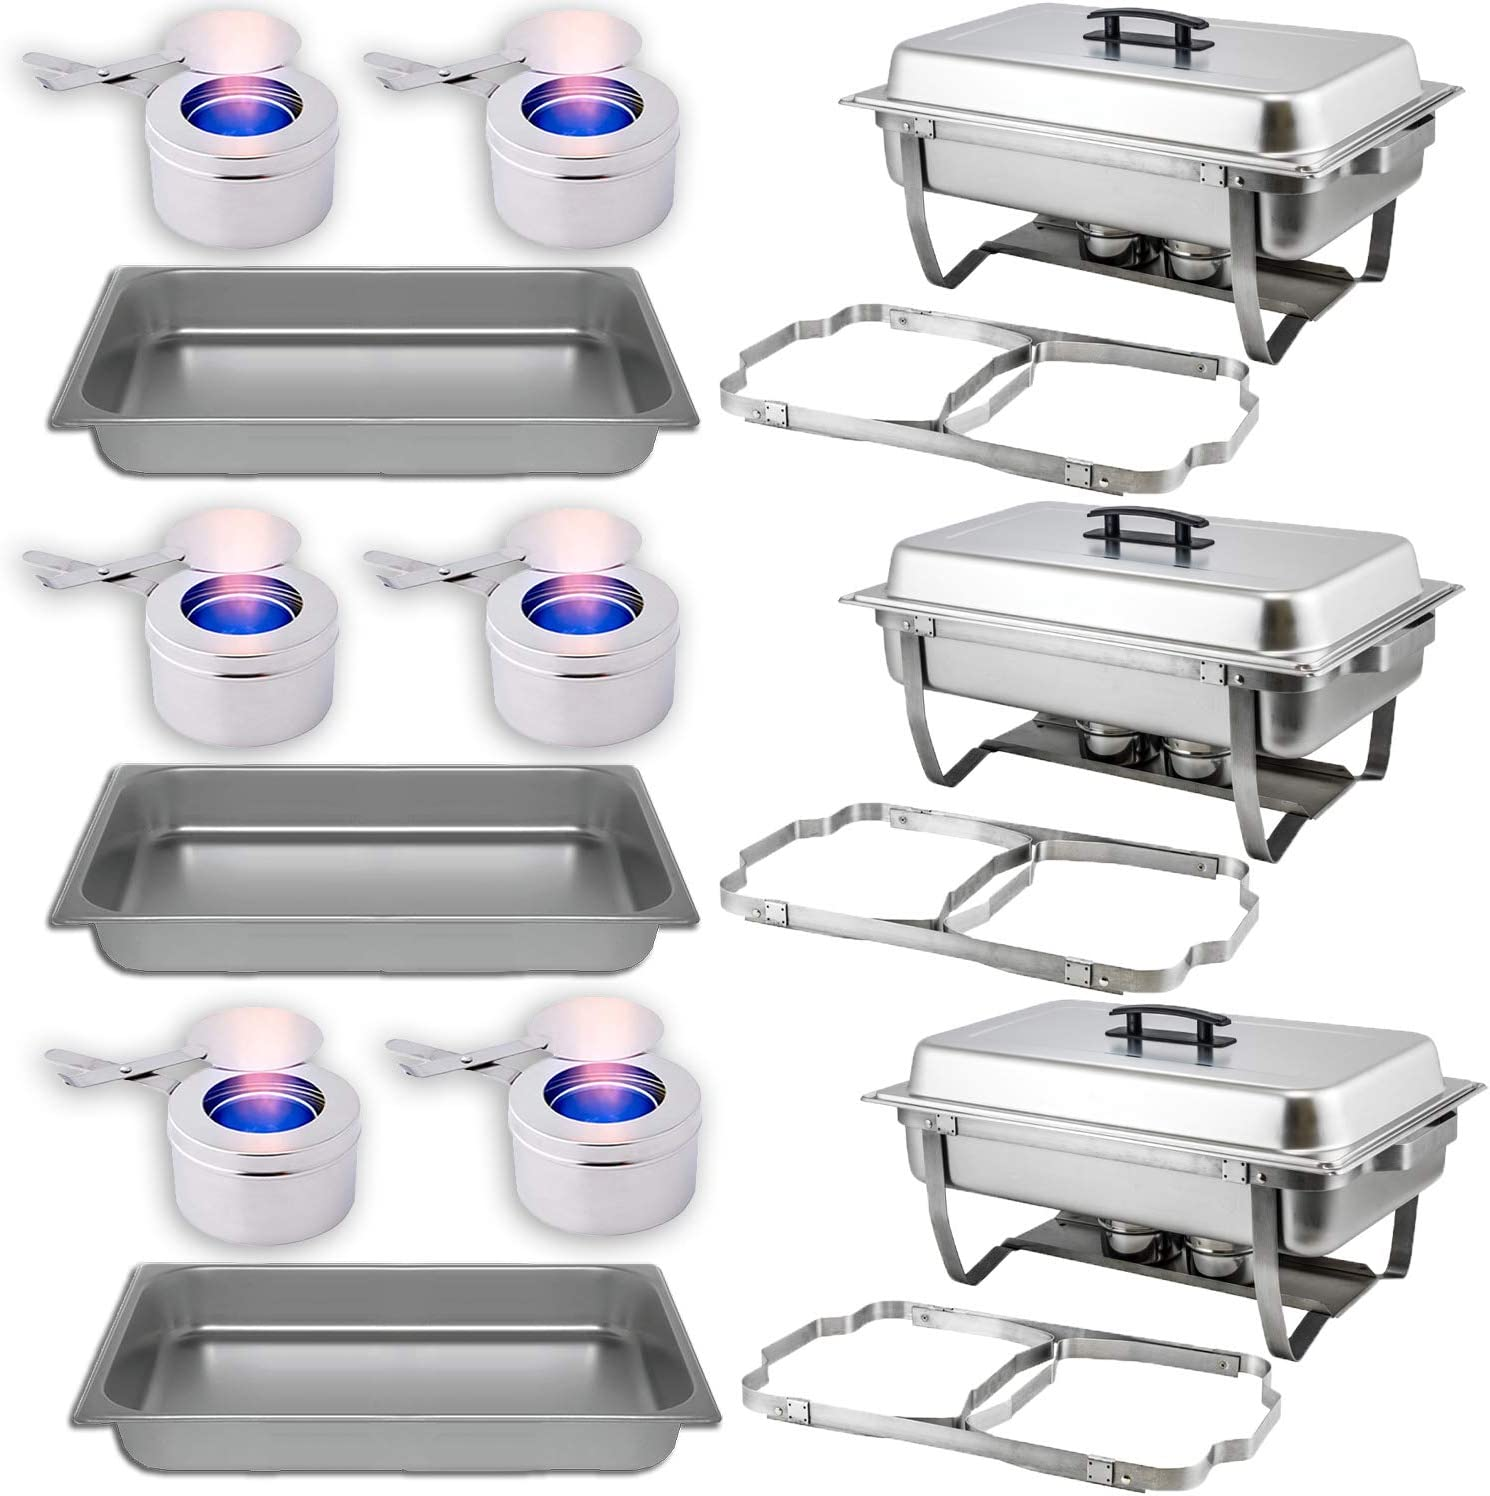 Chafing Dish Buffet Set With Folding Frame + Water Pan + Food Pan (8 qt) + 6 Fuel Holders – 3 Full Warmer Kit